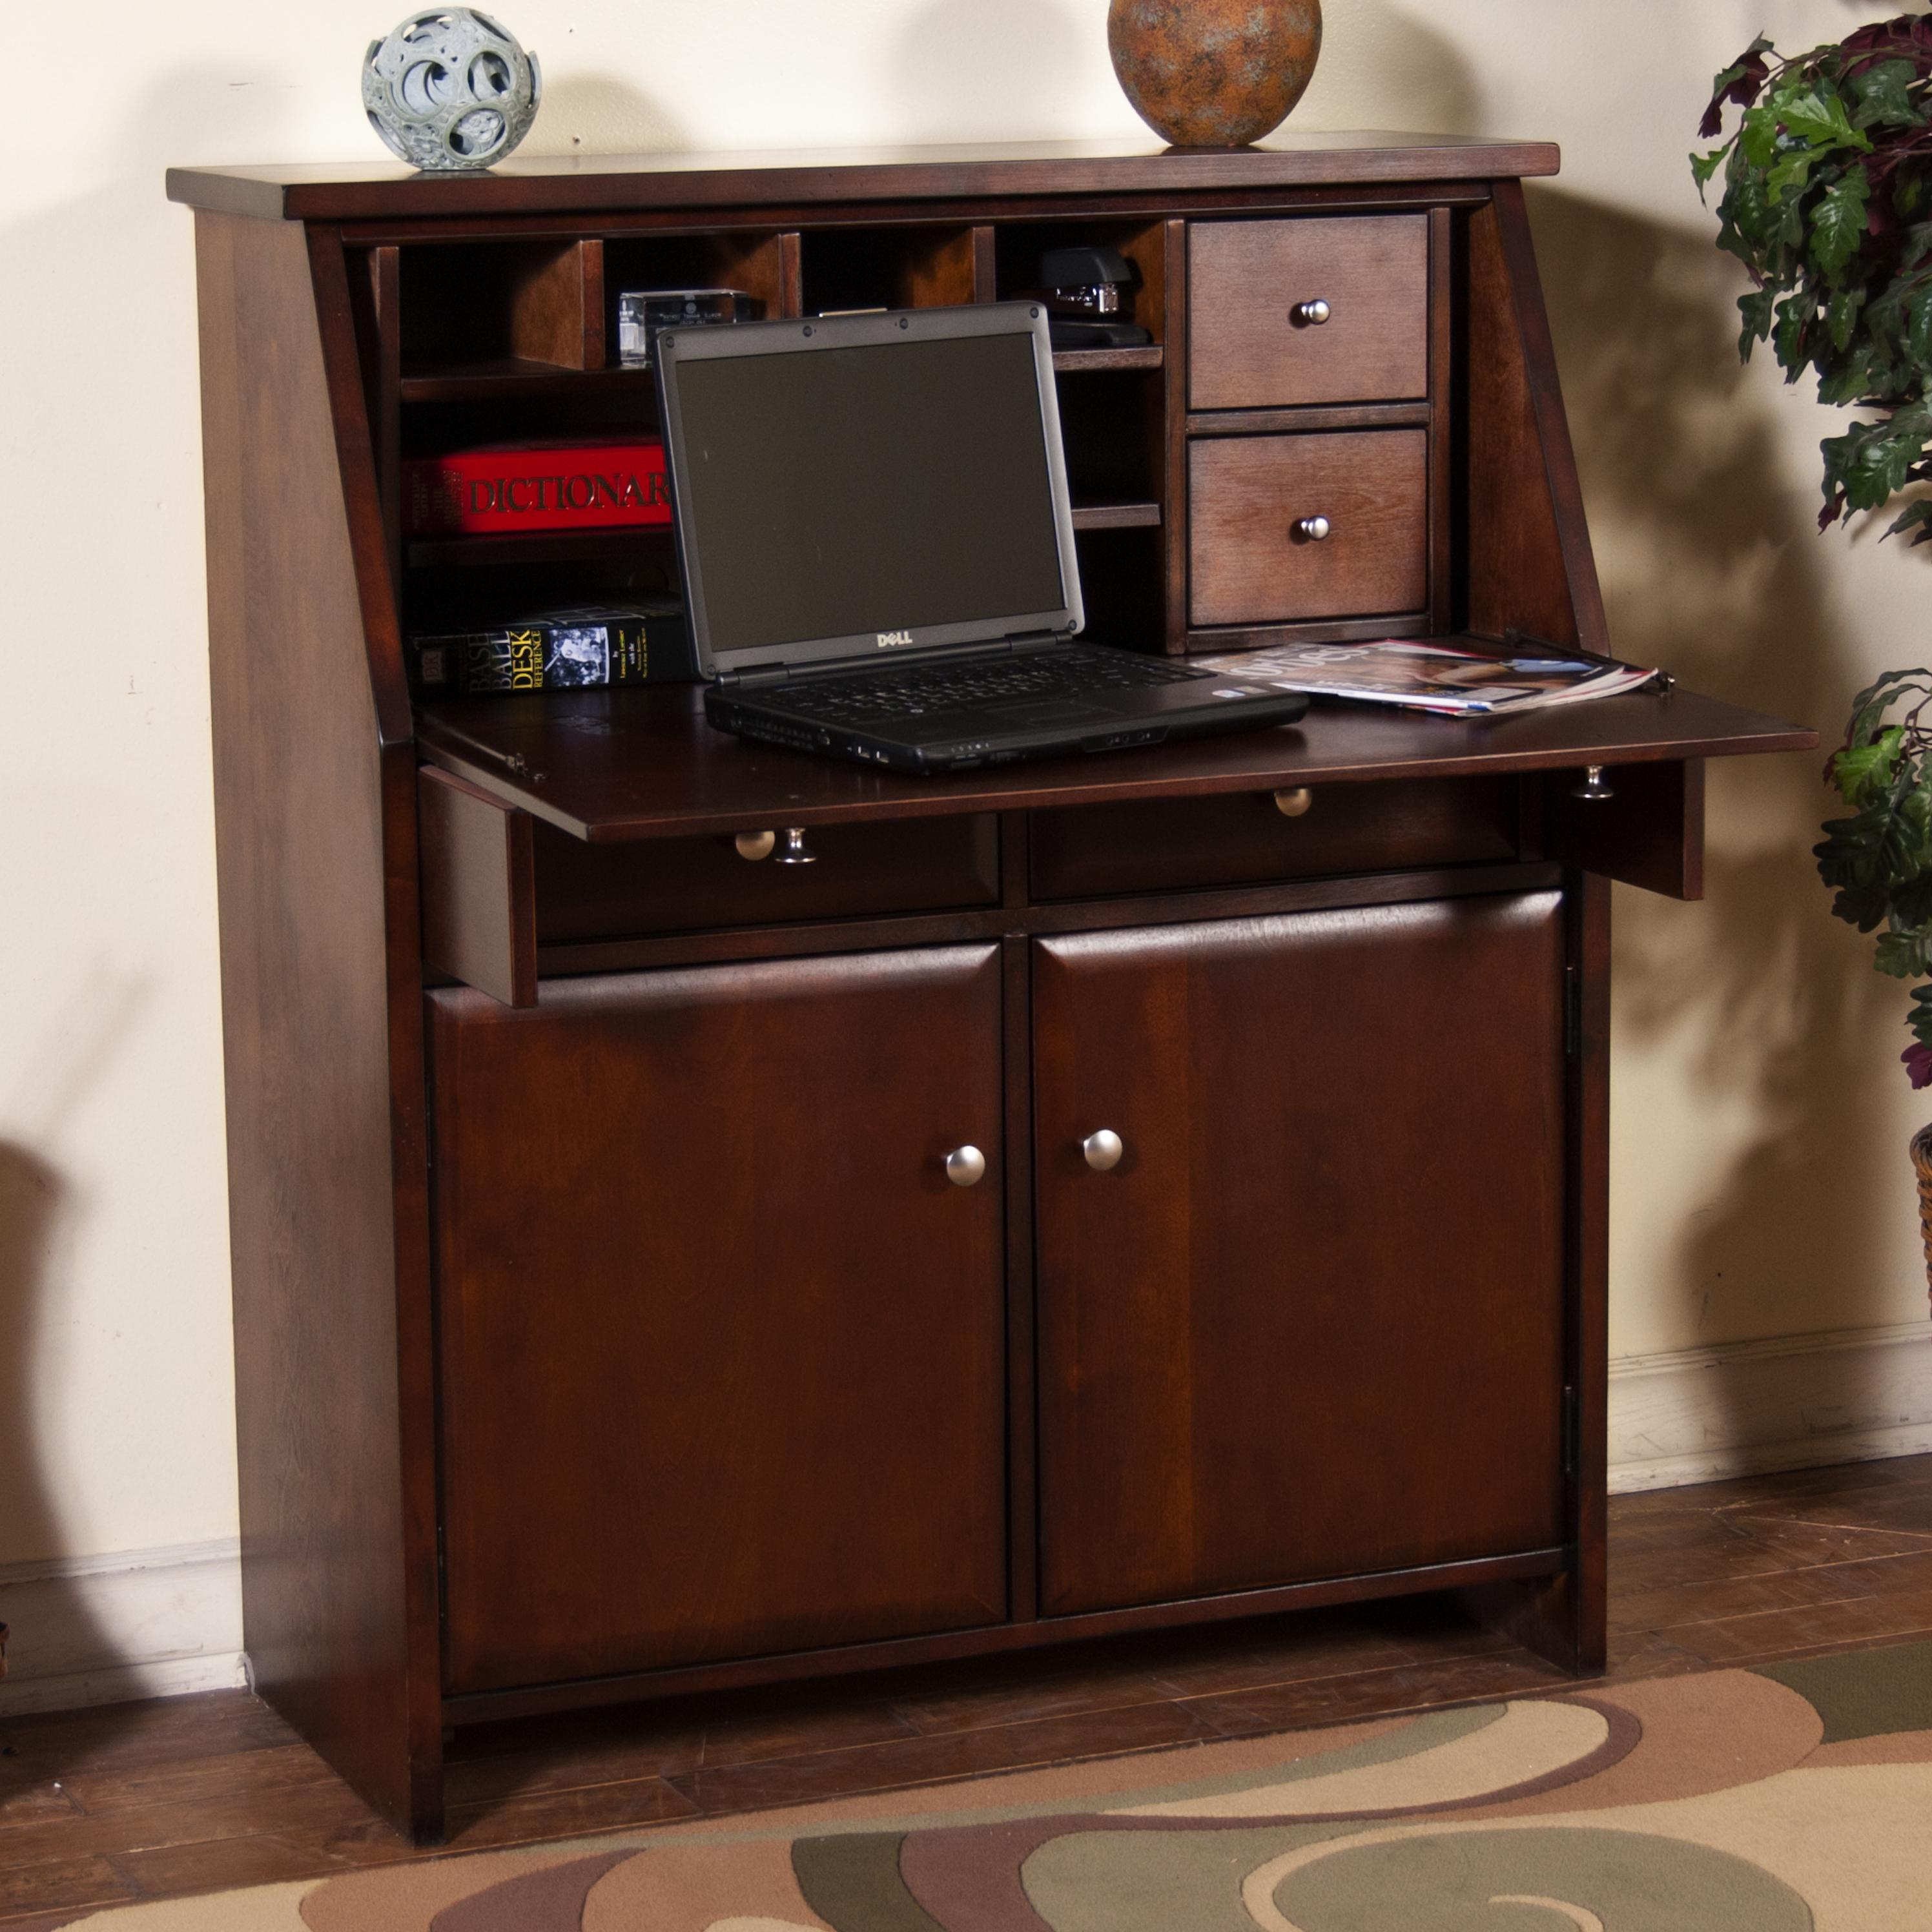 Market Square Cappuccino Scottsville Drop Leaf Desk - Item Number: 2939CA